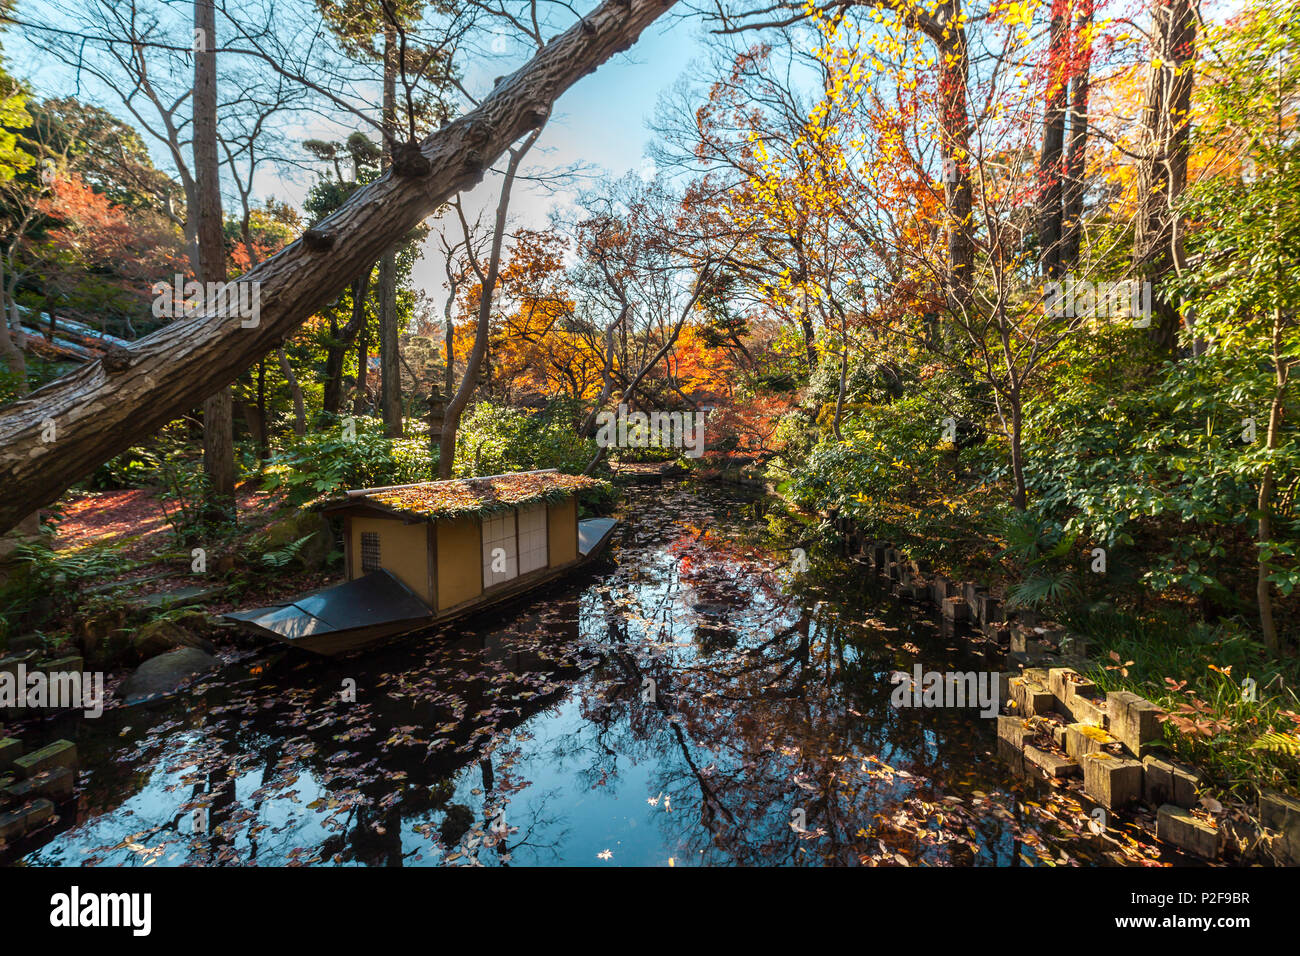 Small pond with boat at garden at Nezu Museum in autumn, Minato-ku, Tokyo, Japan Stock Photo